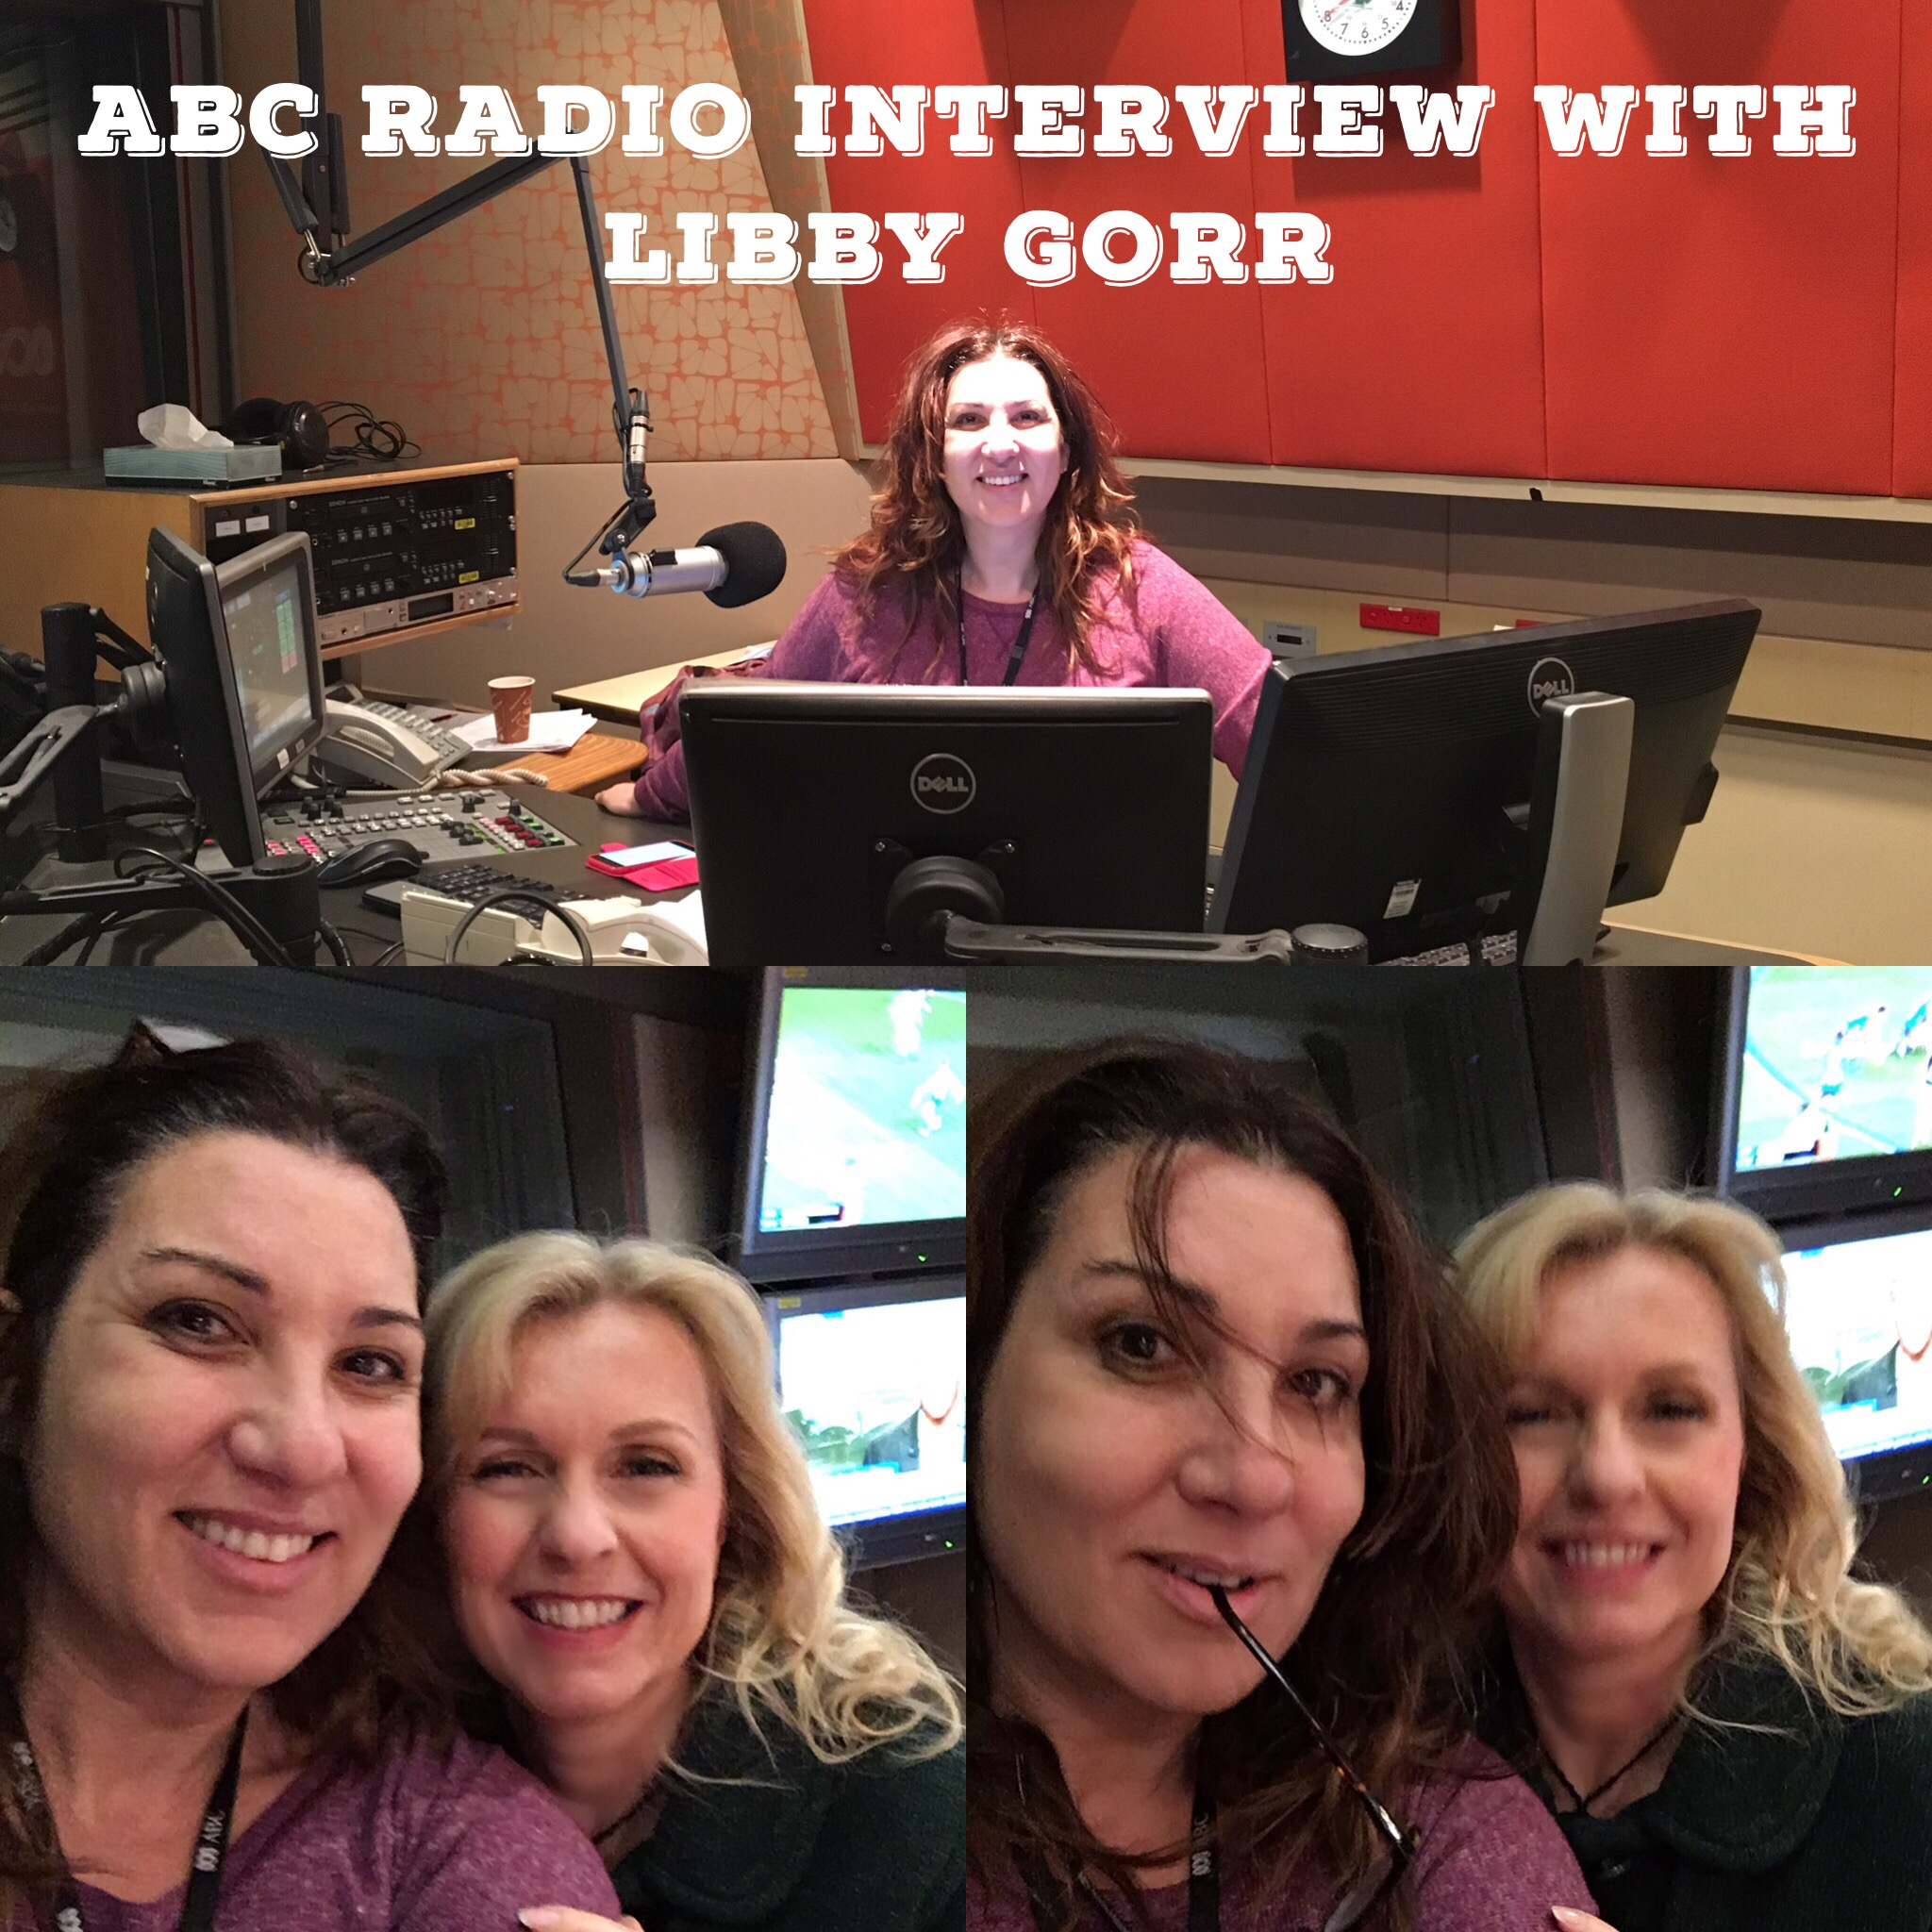 ABC fengshui radio interview 2016 carol partridge